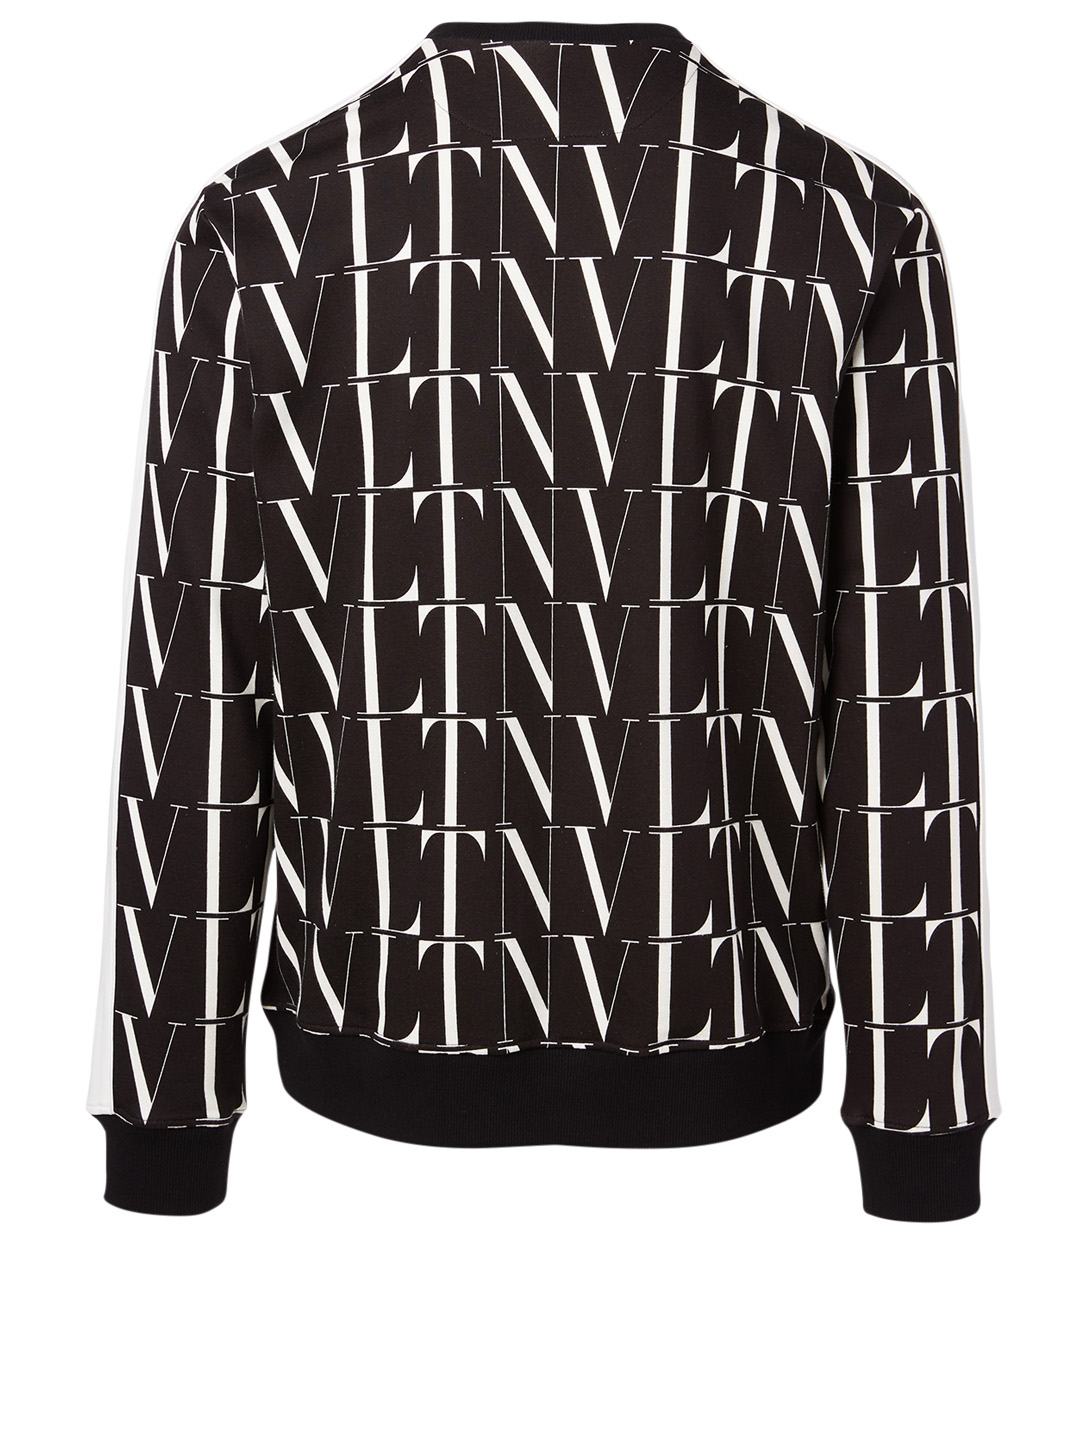 VALENTINO Cotton-Blend Sweatshirt In VLTN Print Men's Multi